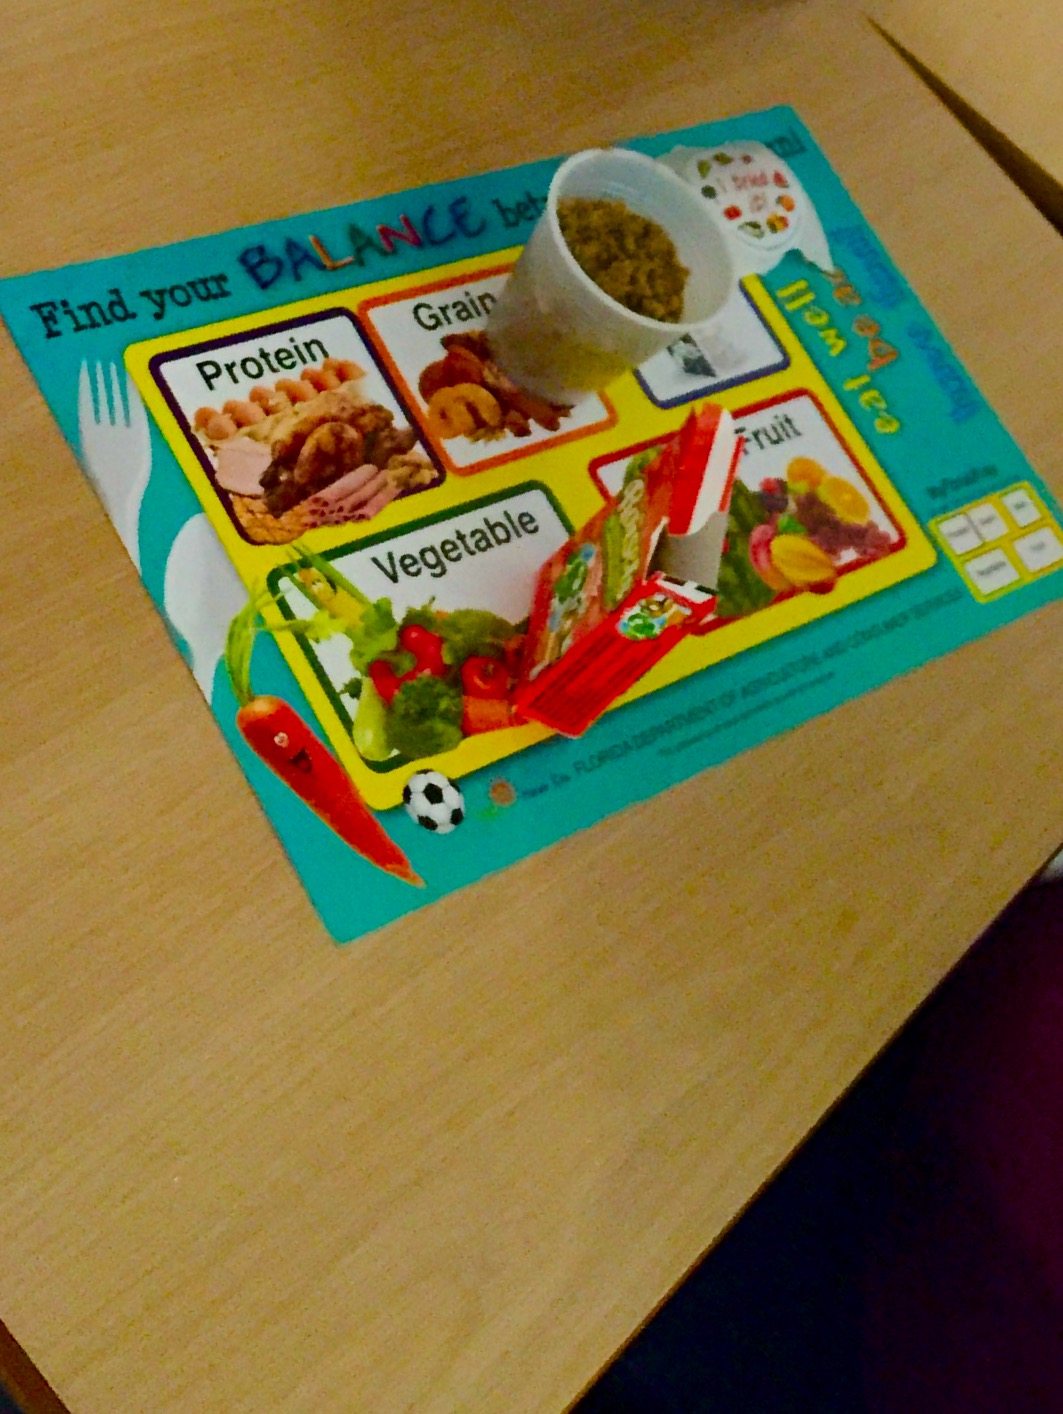 Each student received a MyFloridaTray sheet, a box of Raisels and planted cucumber seeds in a cup.